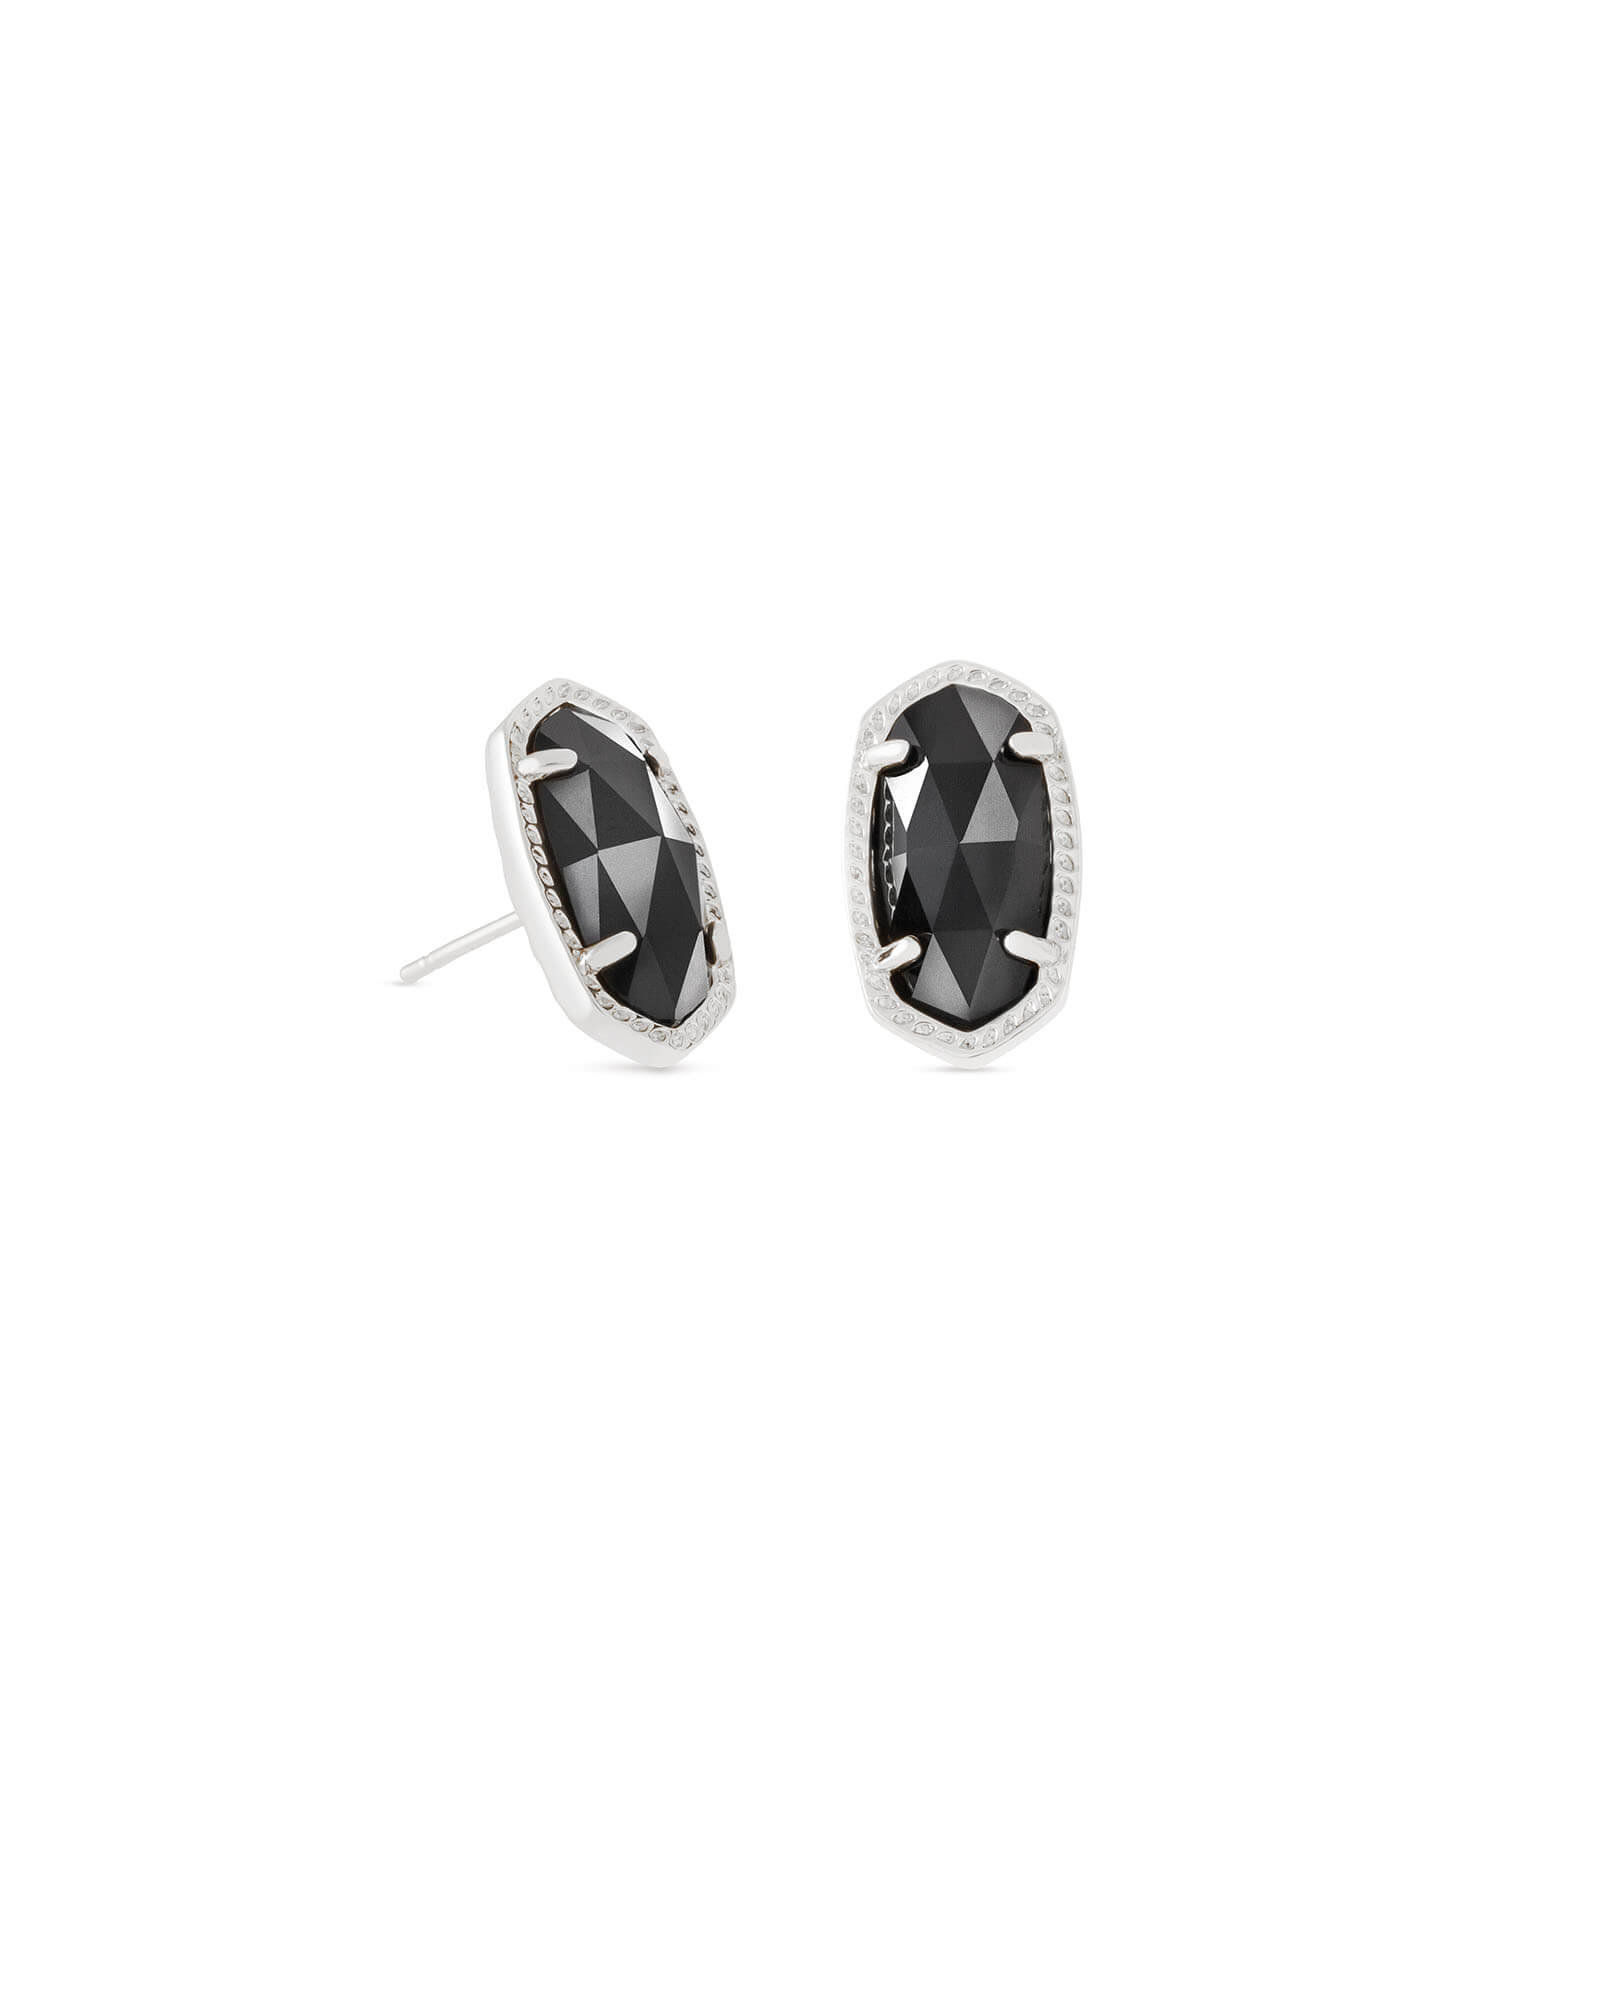 Ellie Silver Stud Earrings in Black